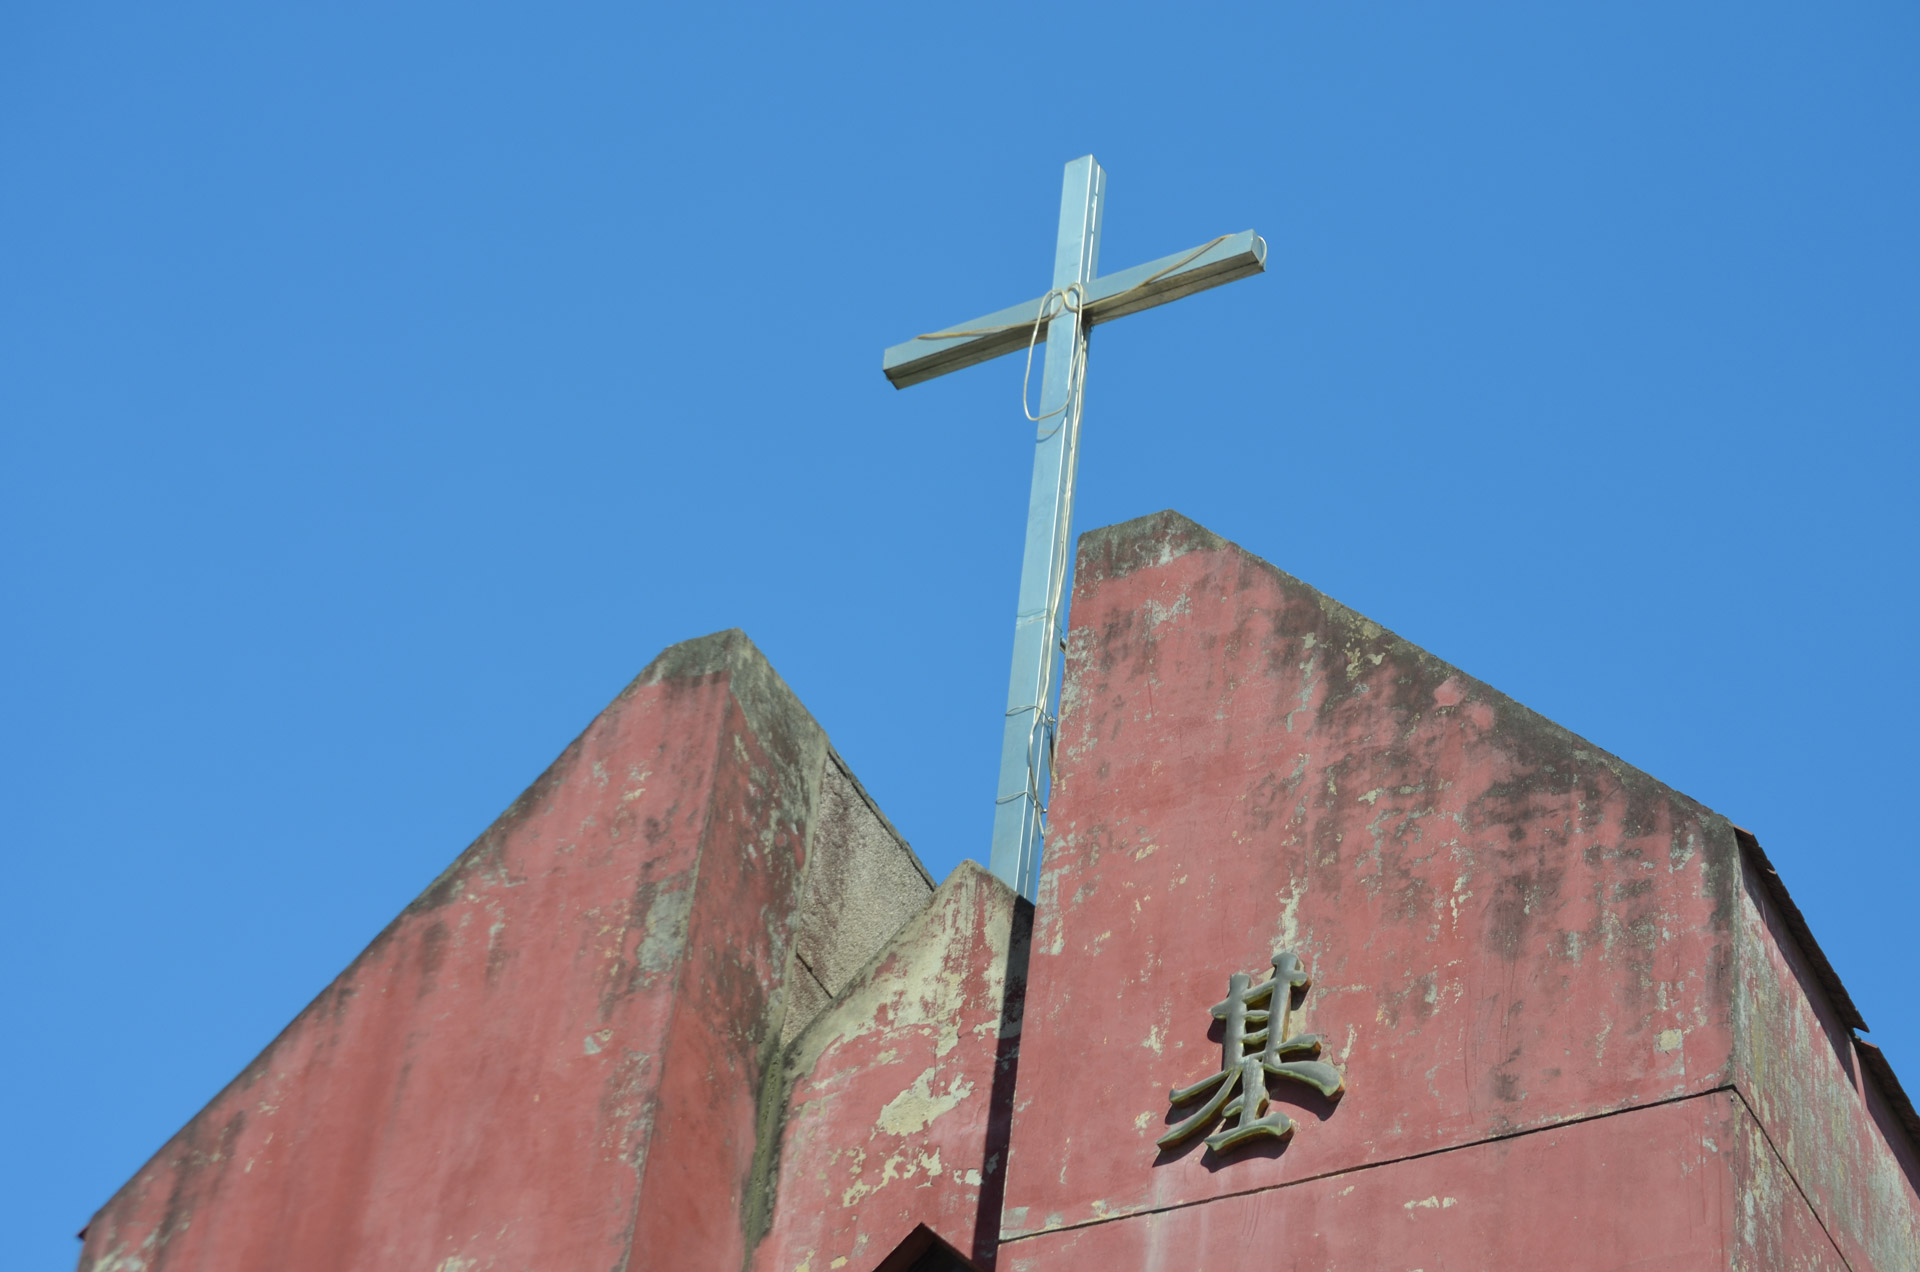 Old church in China